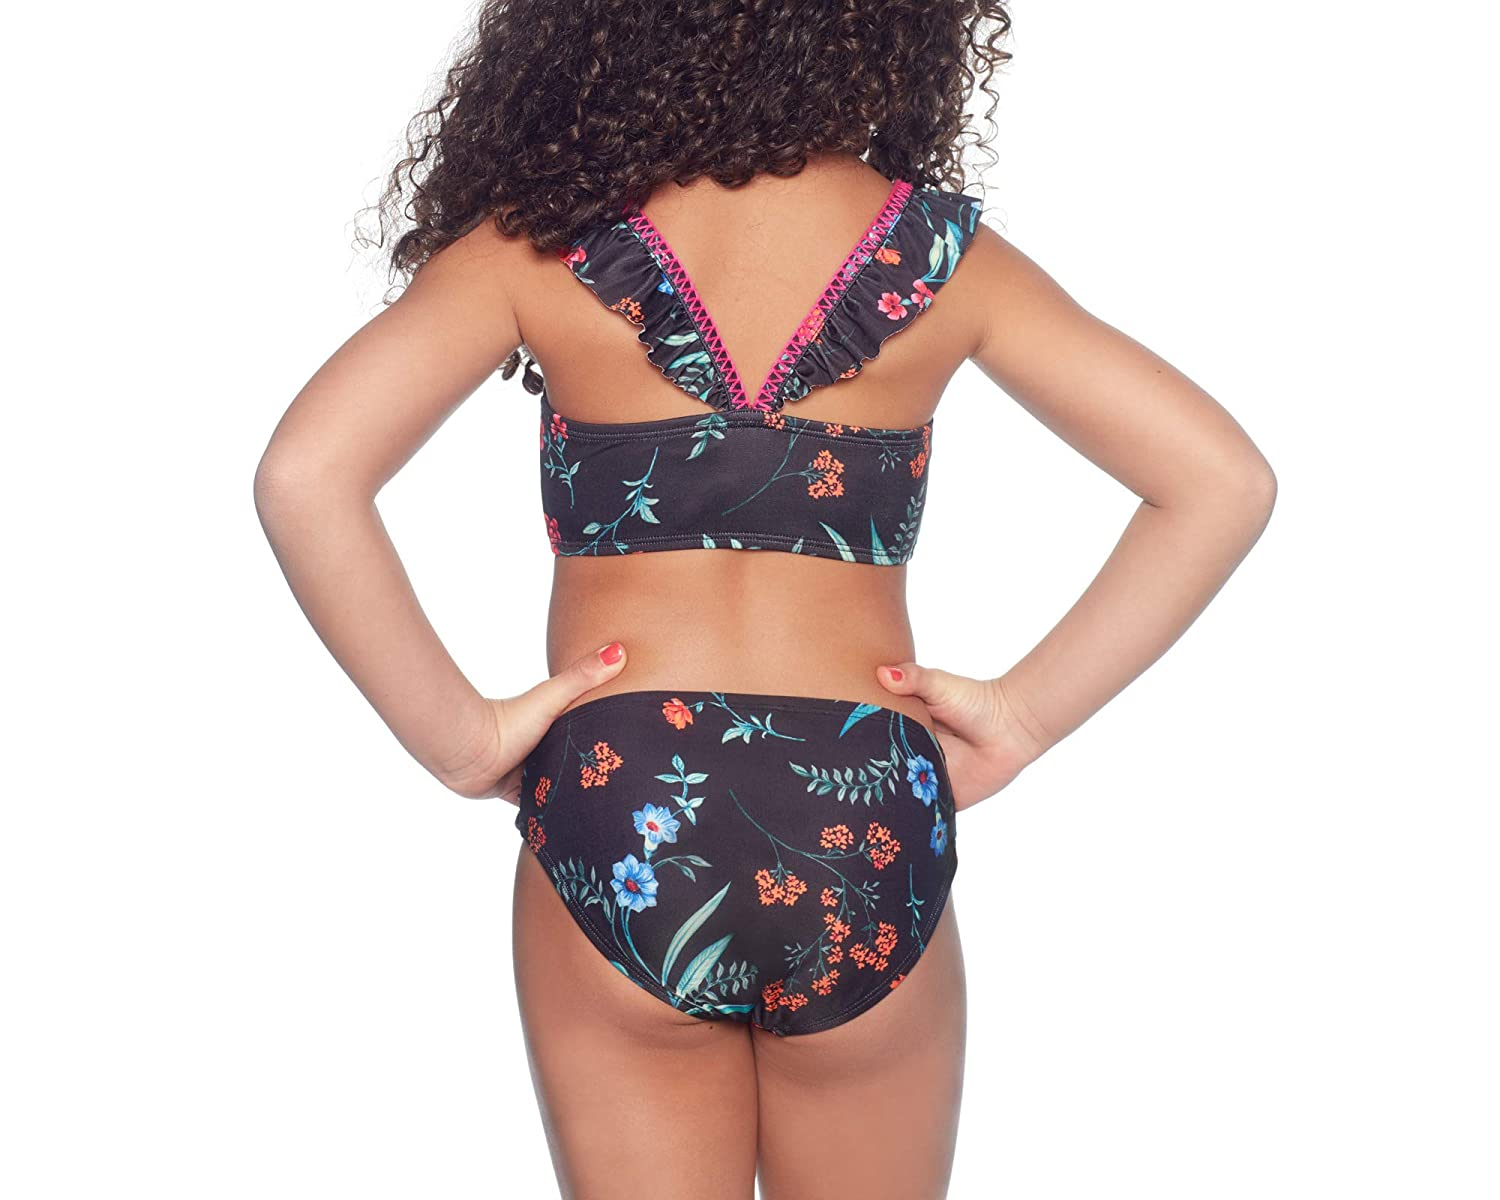 ALYNED TOGETHER Girl/'s Bikini with Square Neck top and Shirred Side Tab Hipster Bottom